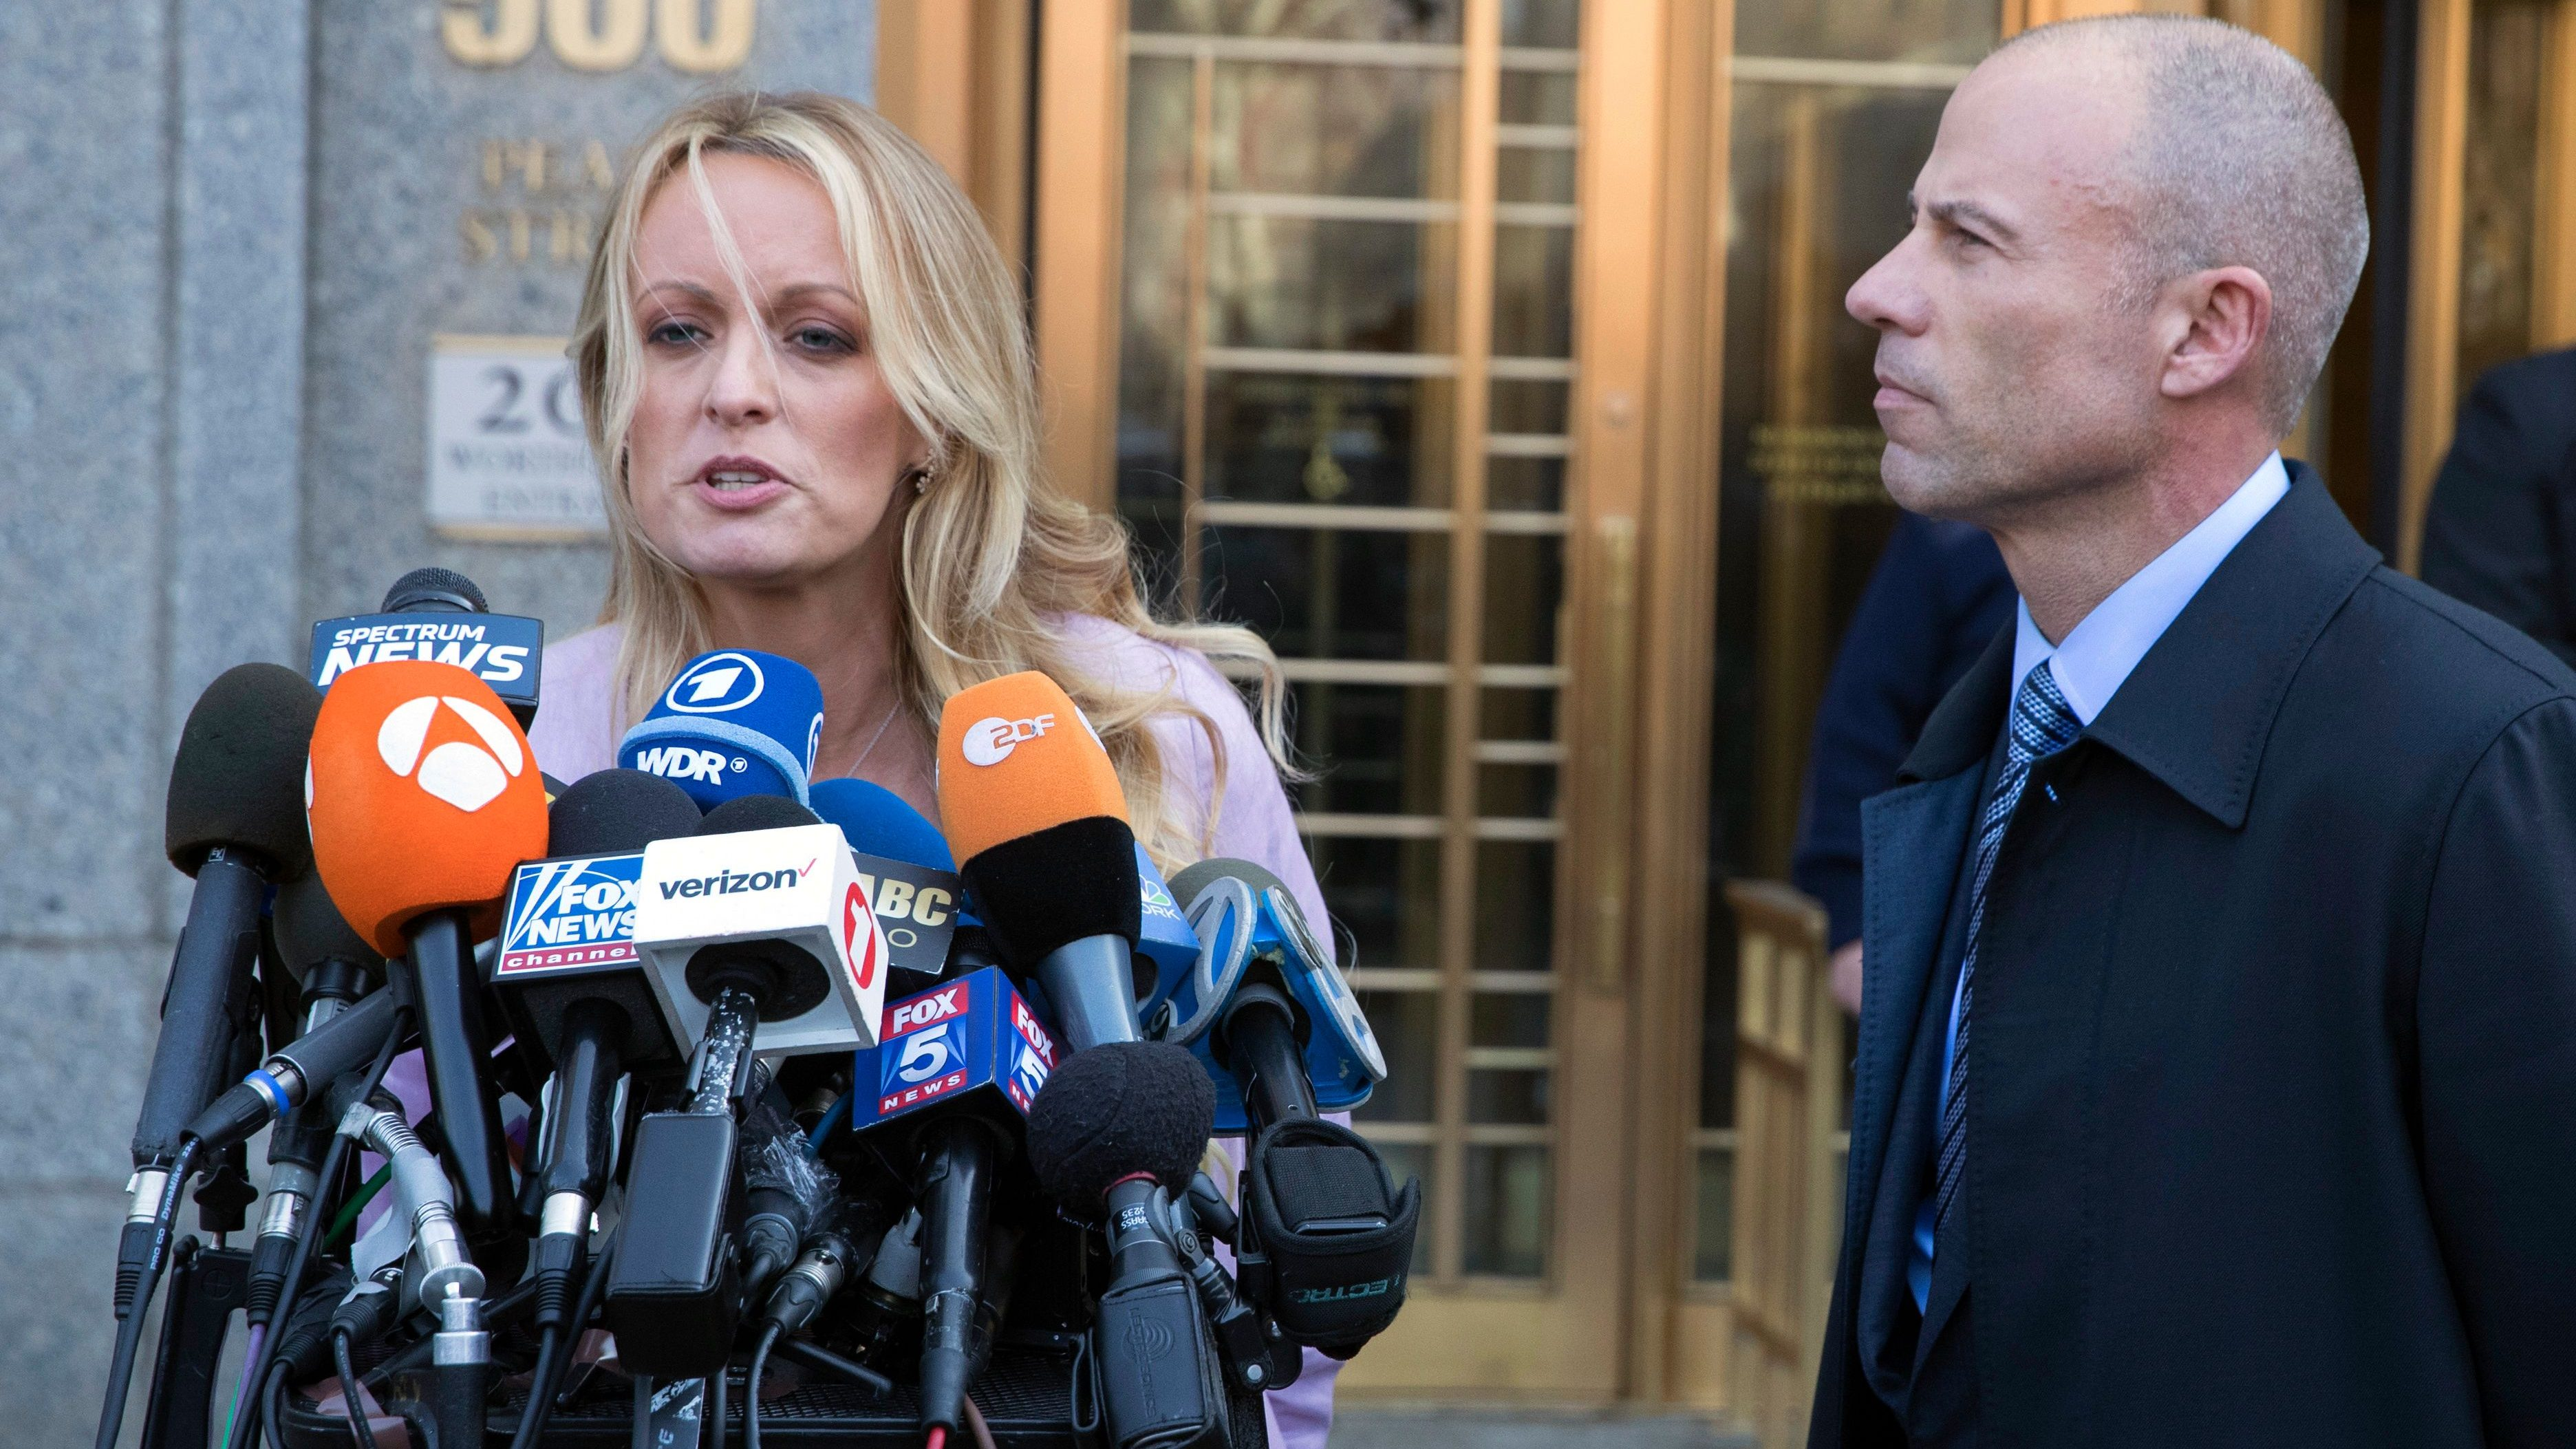 Adult film actress Stormy Daniels, left, speaks as her lawyer Michael Avenatti listens outside federal court, Monday, April 16, 2018, in New York. (AP Photo/Mary Altaffer)